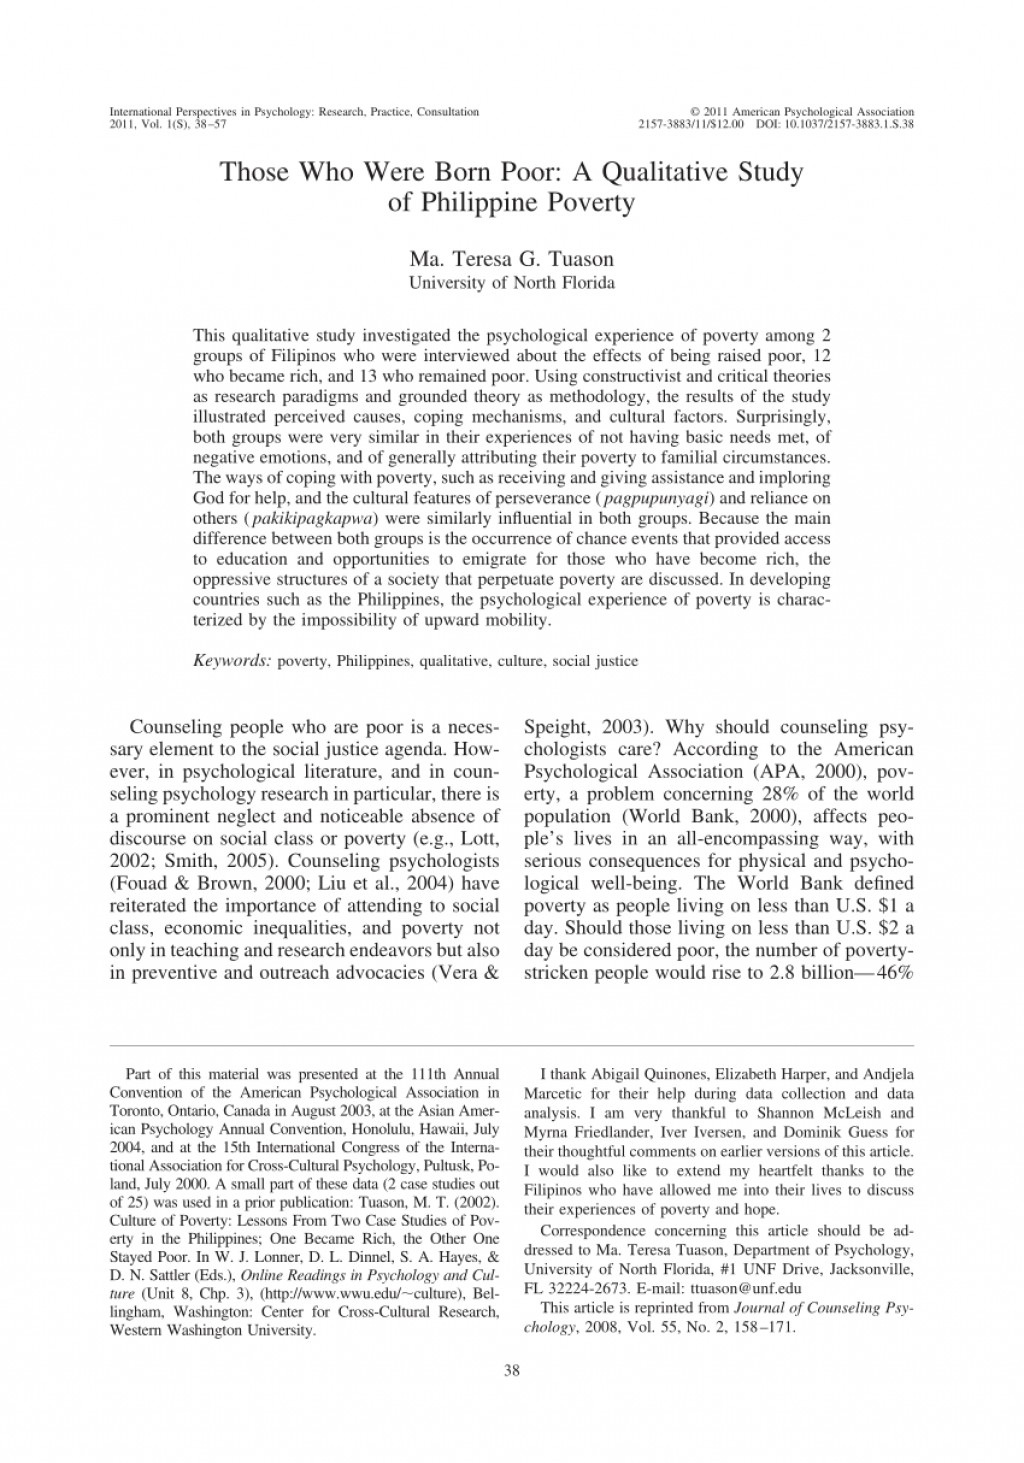 002 Poverty In The Philippines Research Paper Abstract Remarkable Large